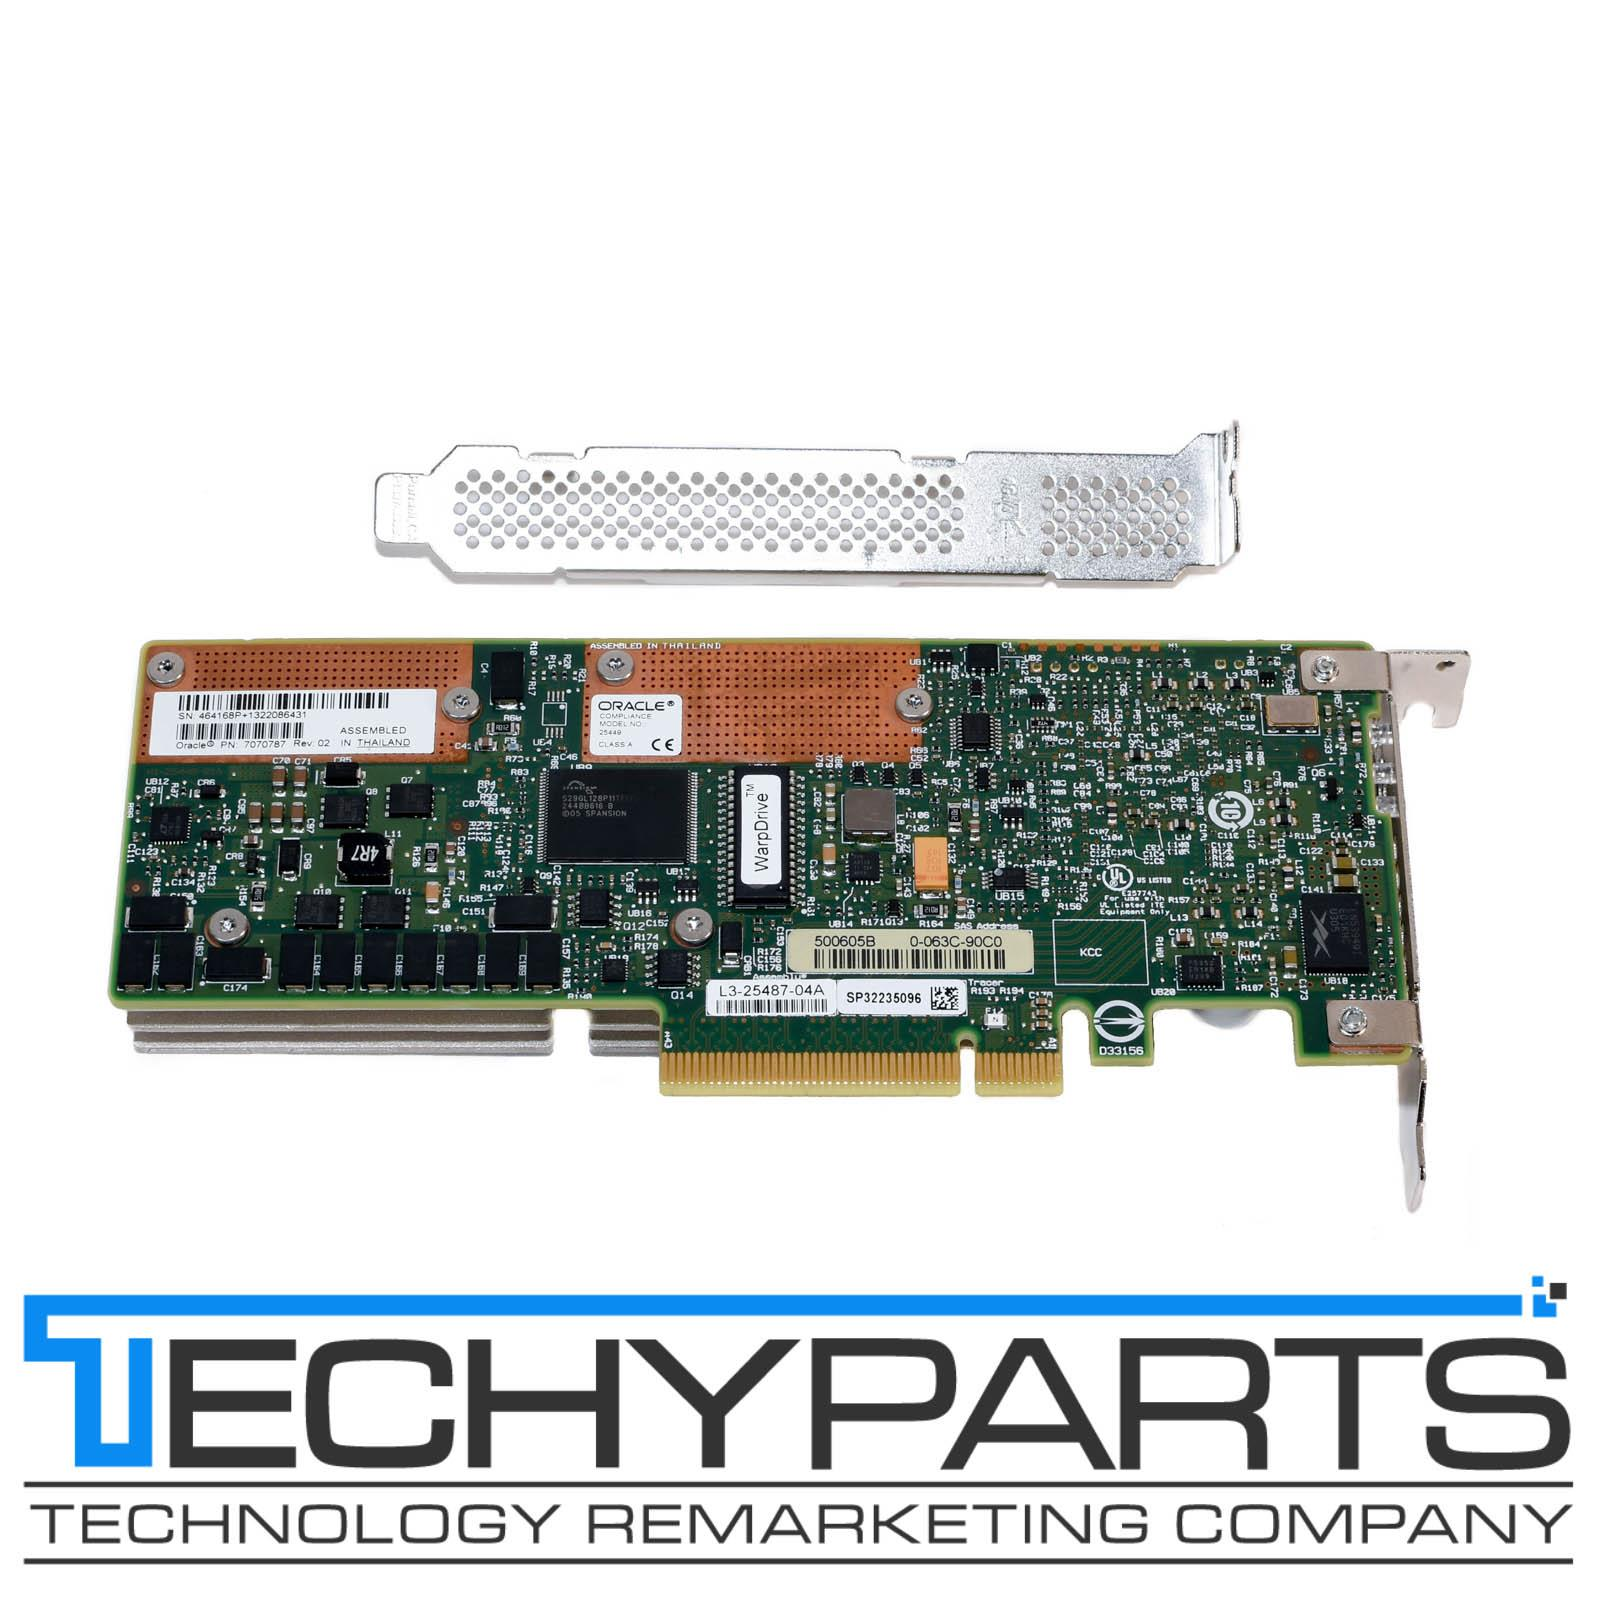 Details about LSI NWD-BLP4-400 Nytro WarpDrive 400GB SSD Application  Acceleration Card Sun F40